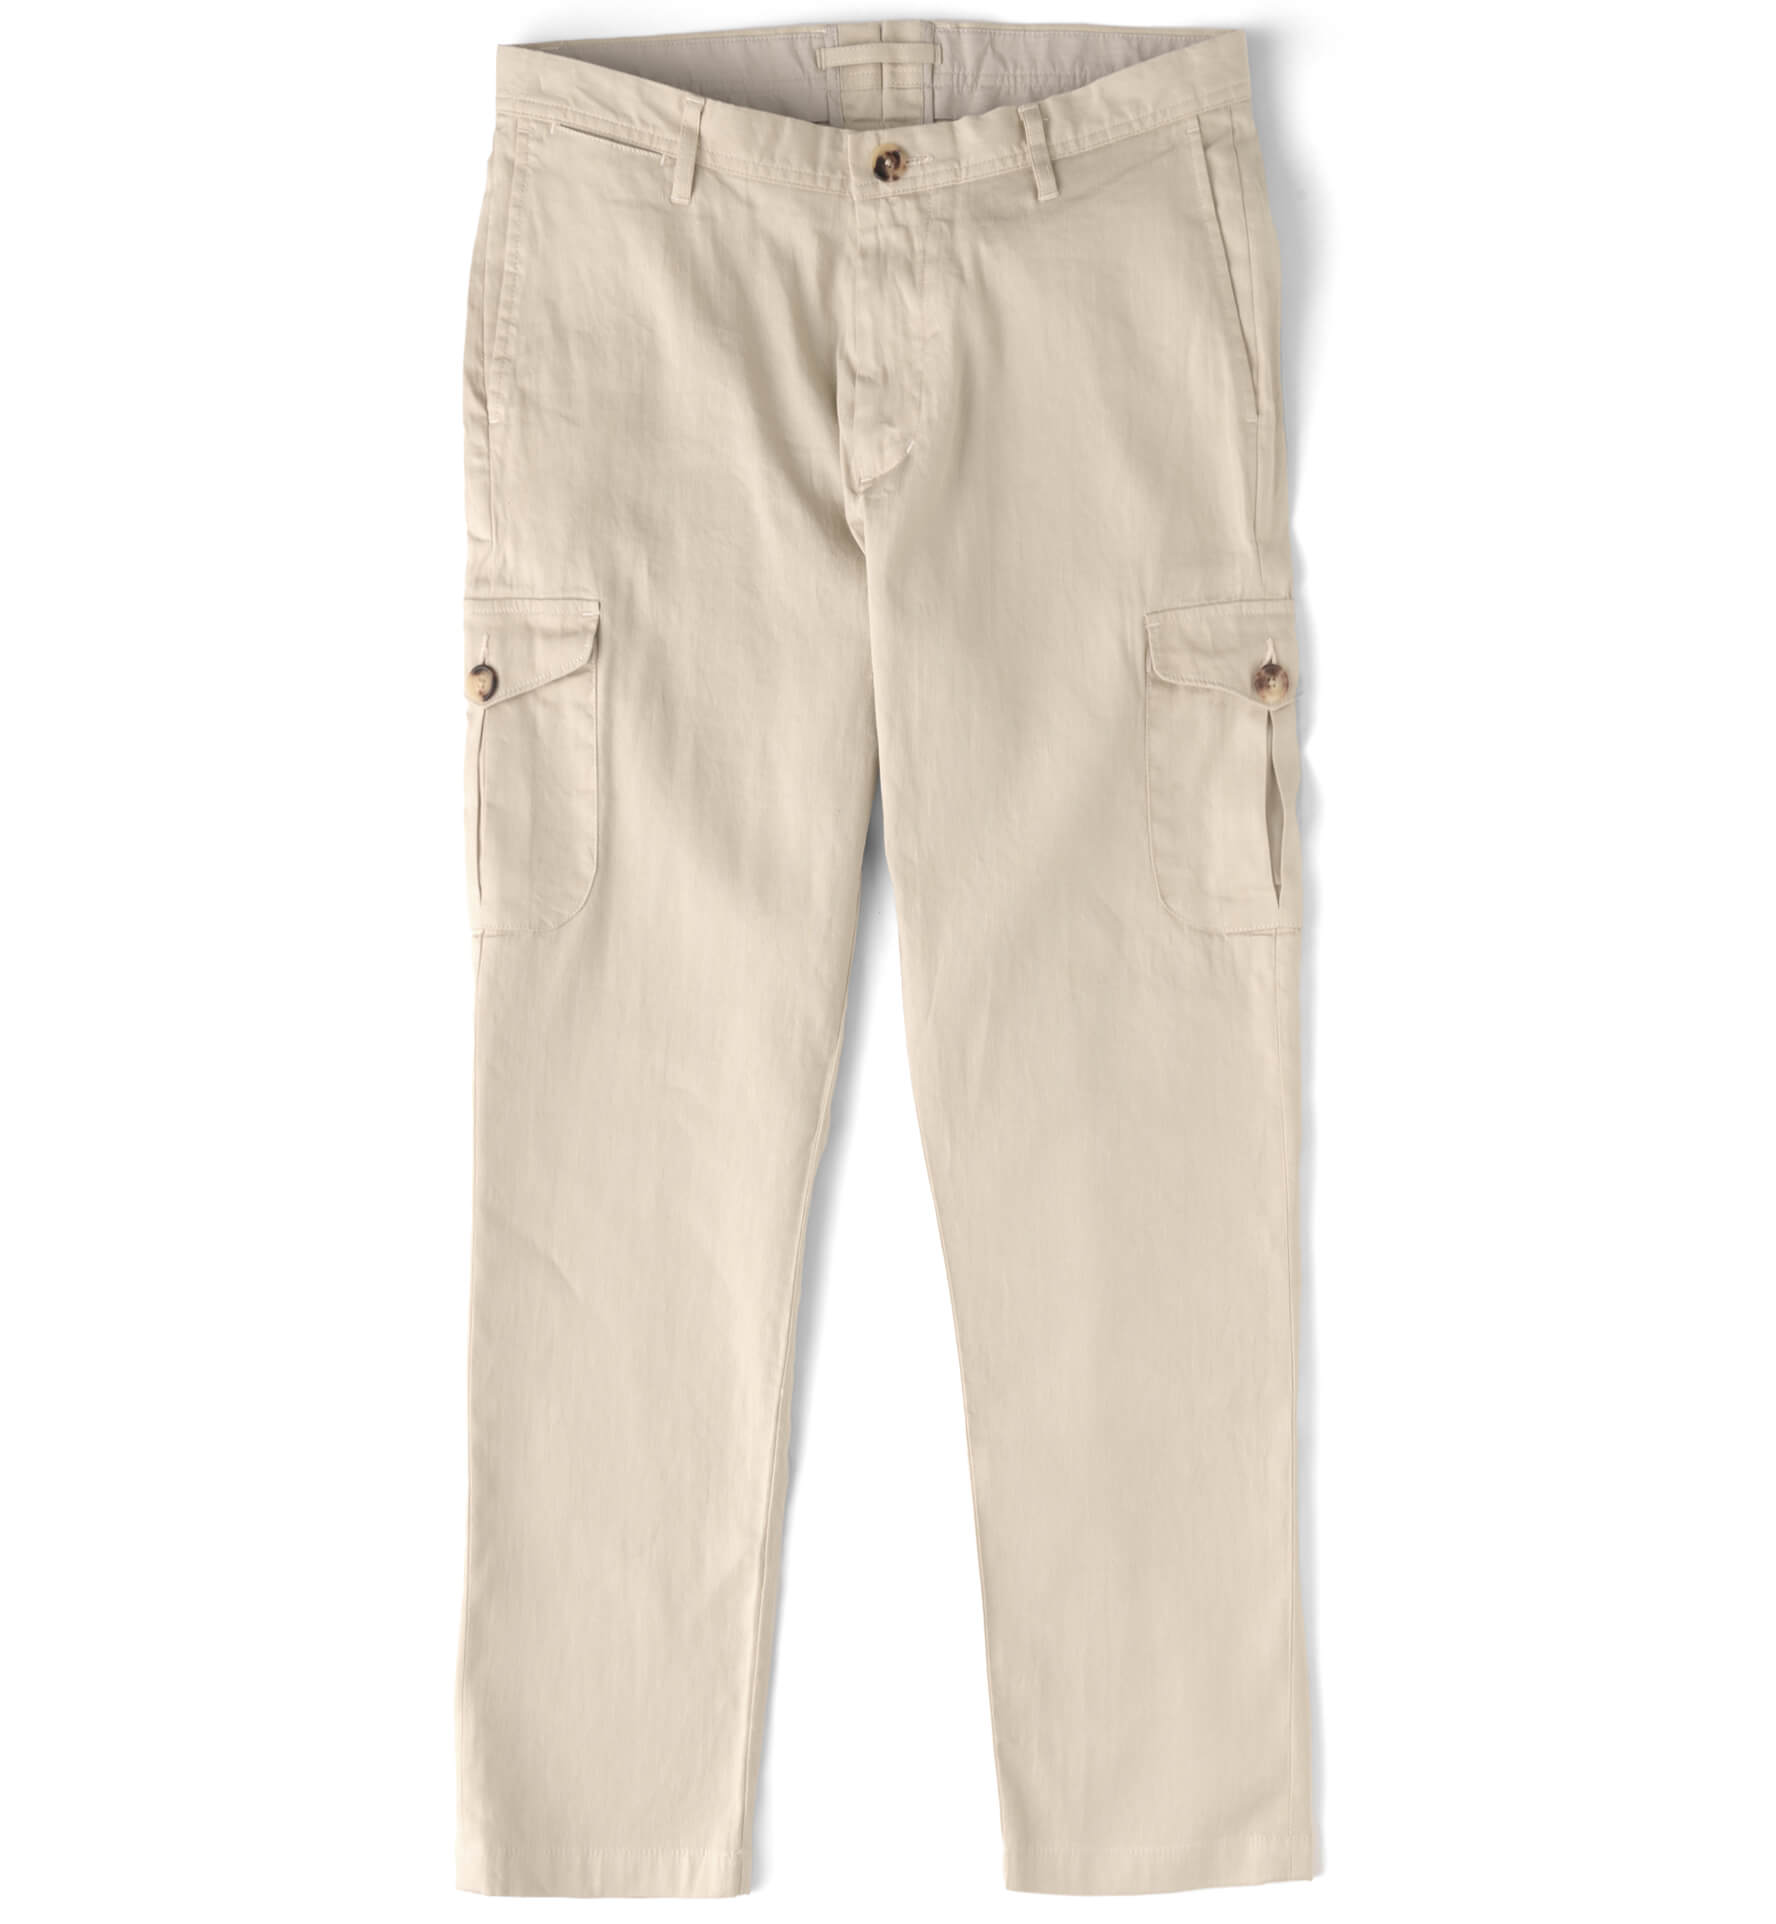 Zoom Image of Thompson Beige Stretch Linen Blend Cargo Pant